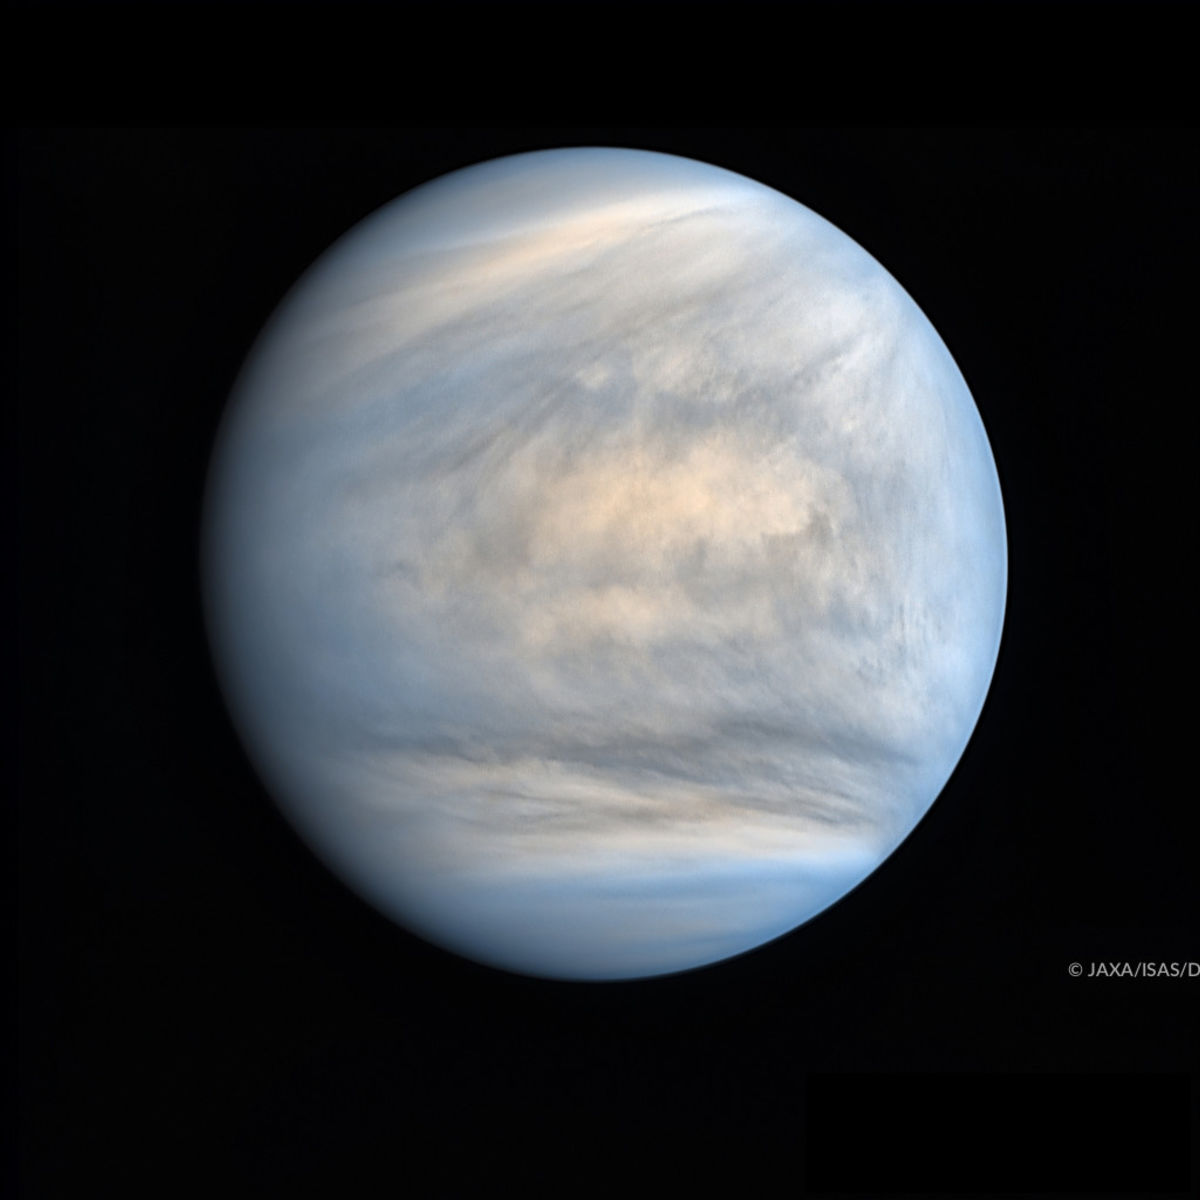 Venus in ultraviolet shows interesting — and difficult to explain — contrasts in the cloud blanket. Credit: JAXA / ISAS / DARTS / Damia Bouic